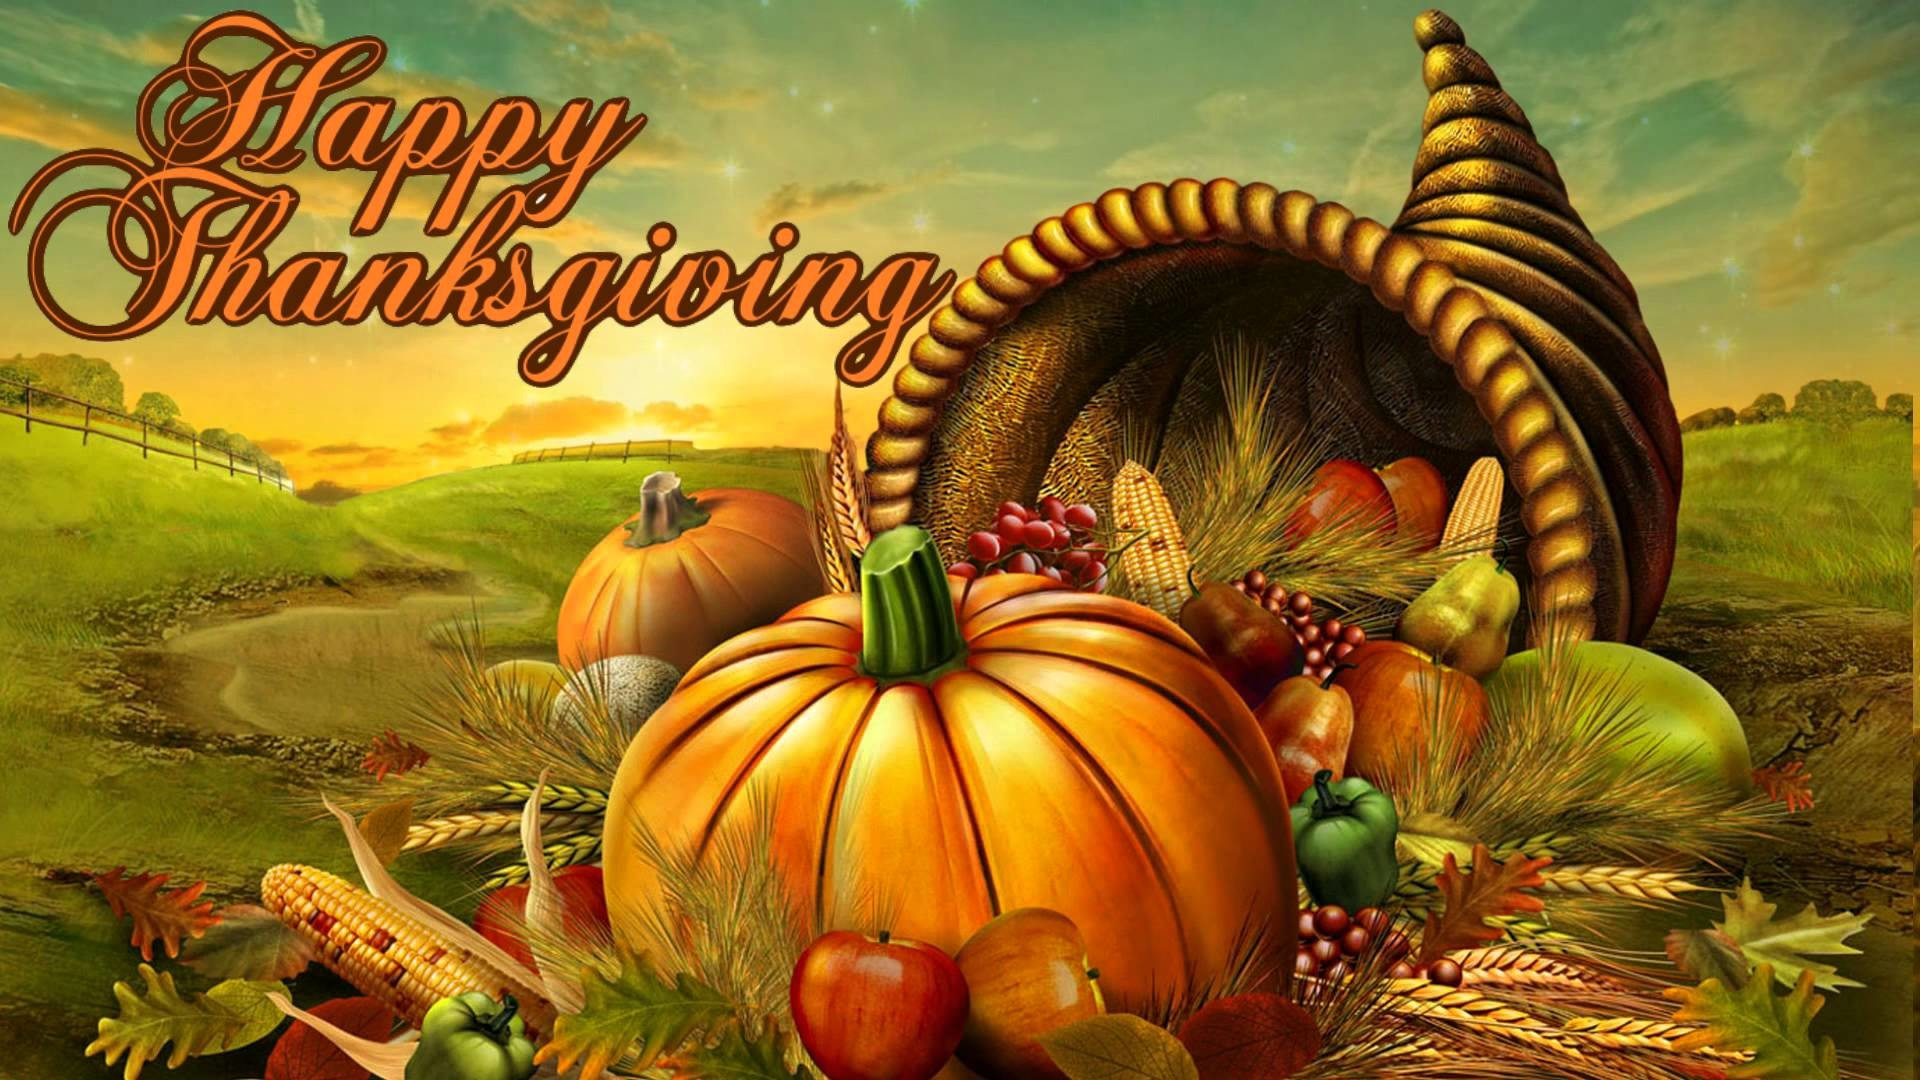 1920x1080 Thanksgiving - Free Creative Commons background video 1080p HD stock video  footage - YouTube